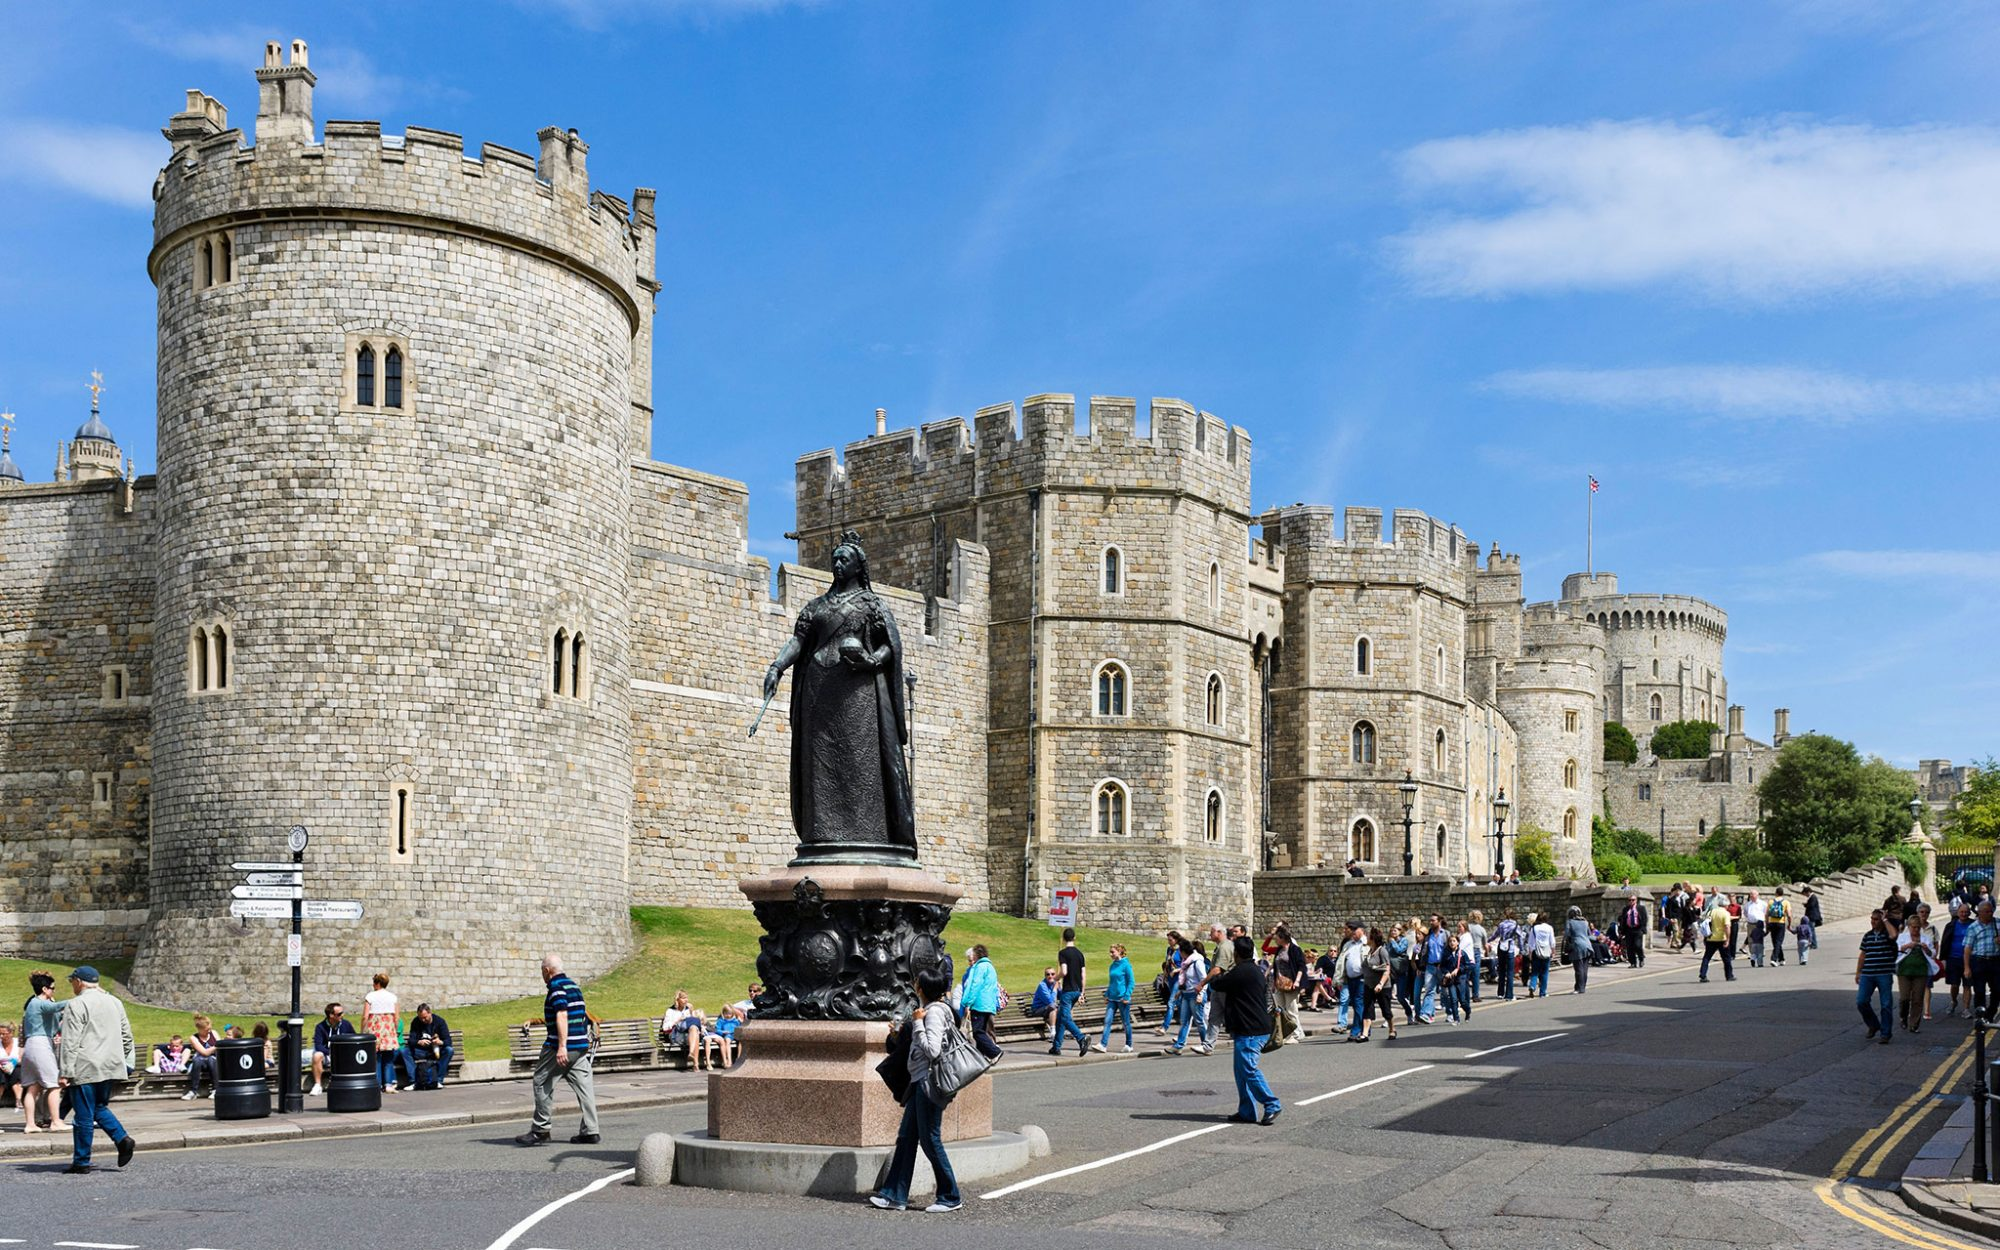 World's Most-Visited Castles: No. 19 Windsor Castle, Berkshire, United Kingdom